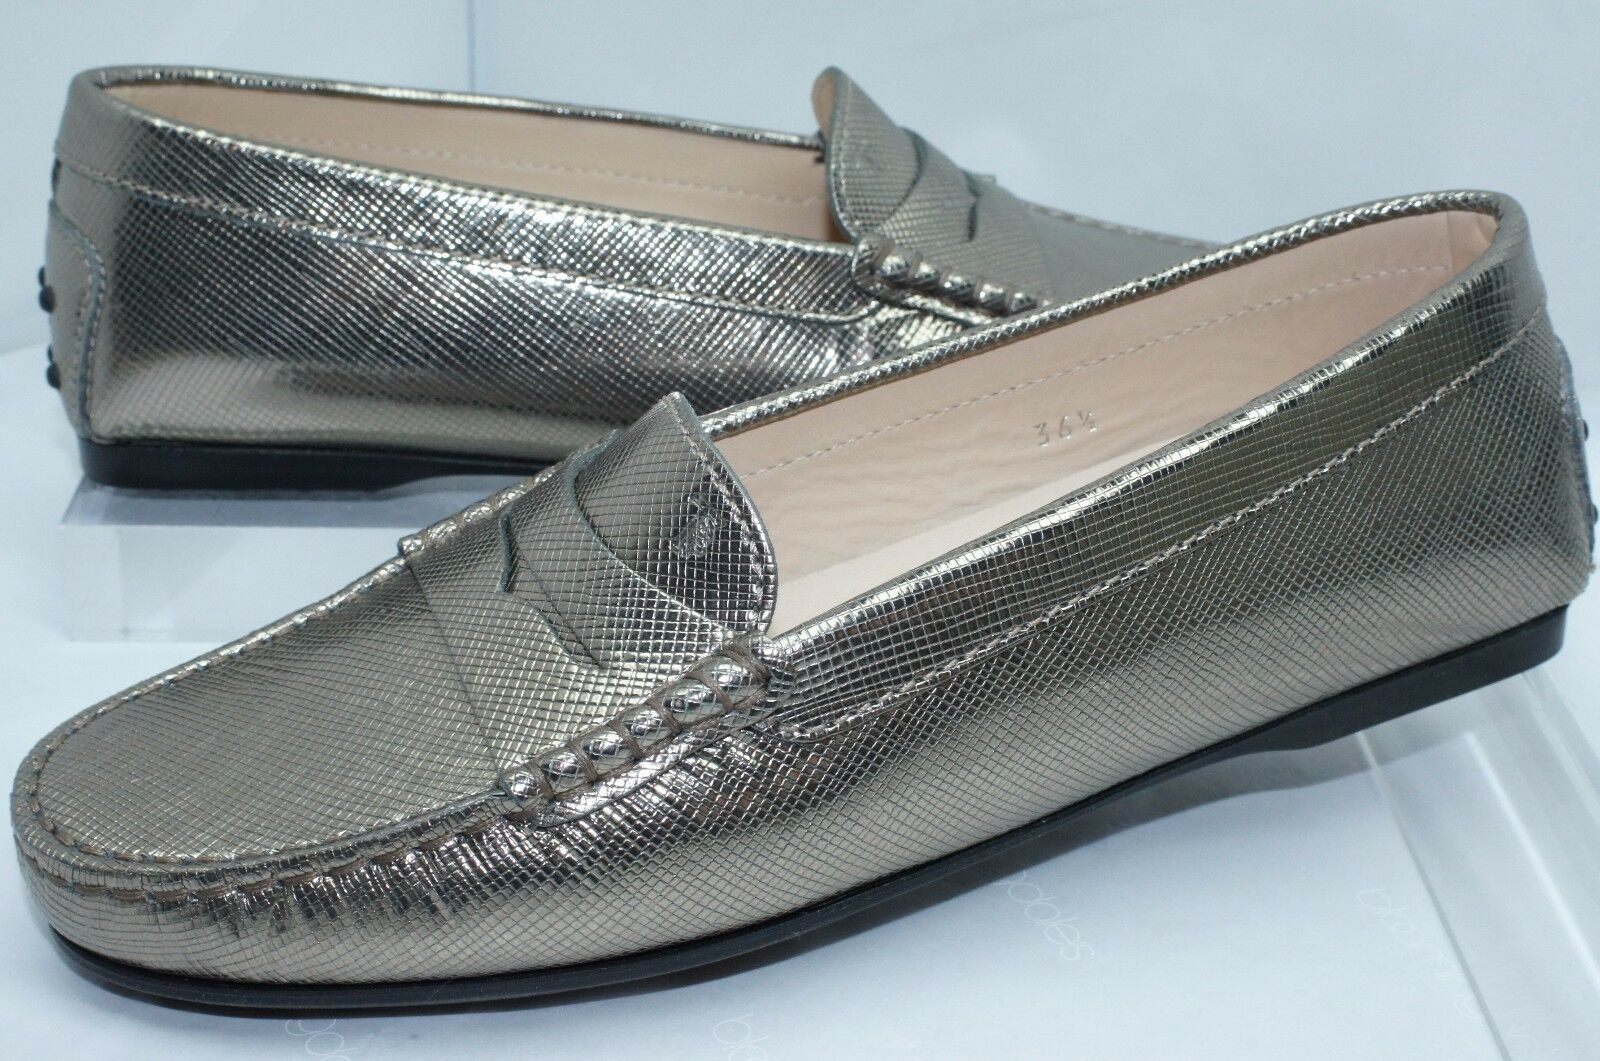 New Tod's shoes Flats Rubber Moccasin Size 36.5 Pearl Grey gold Sale Gift